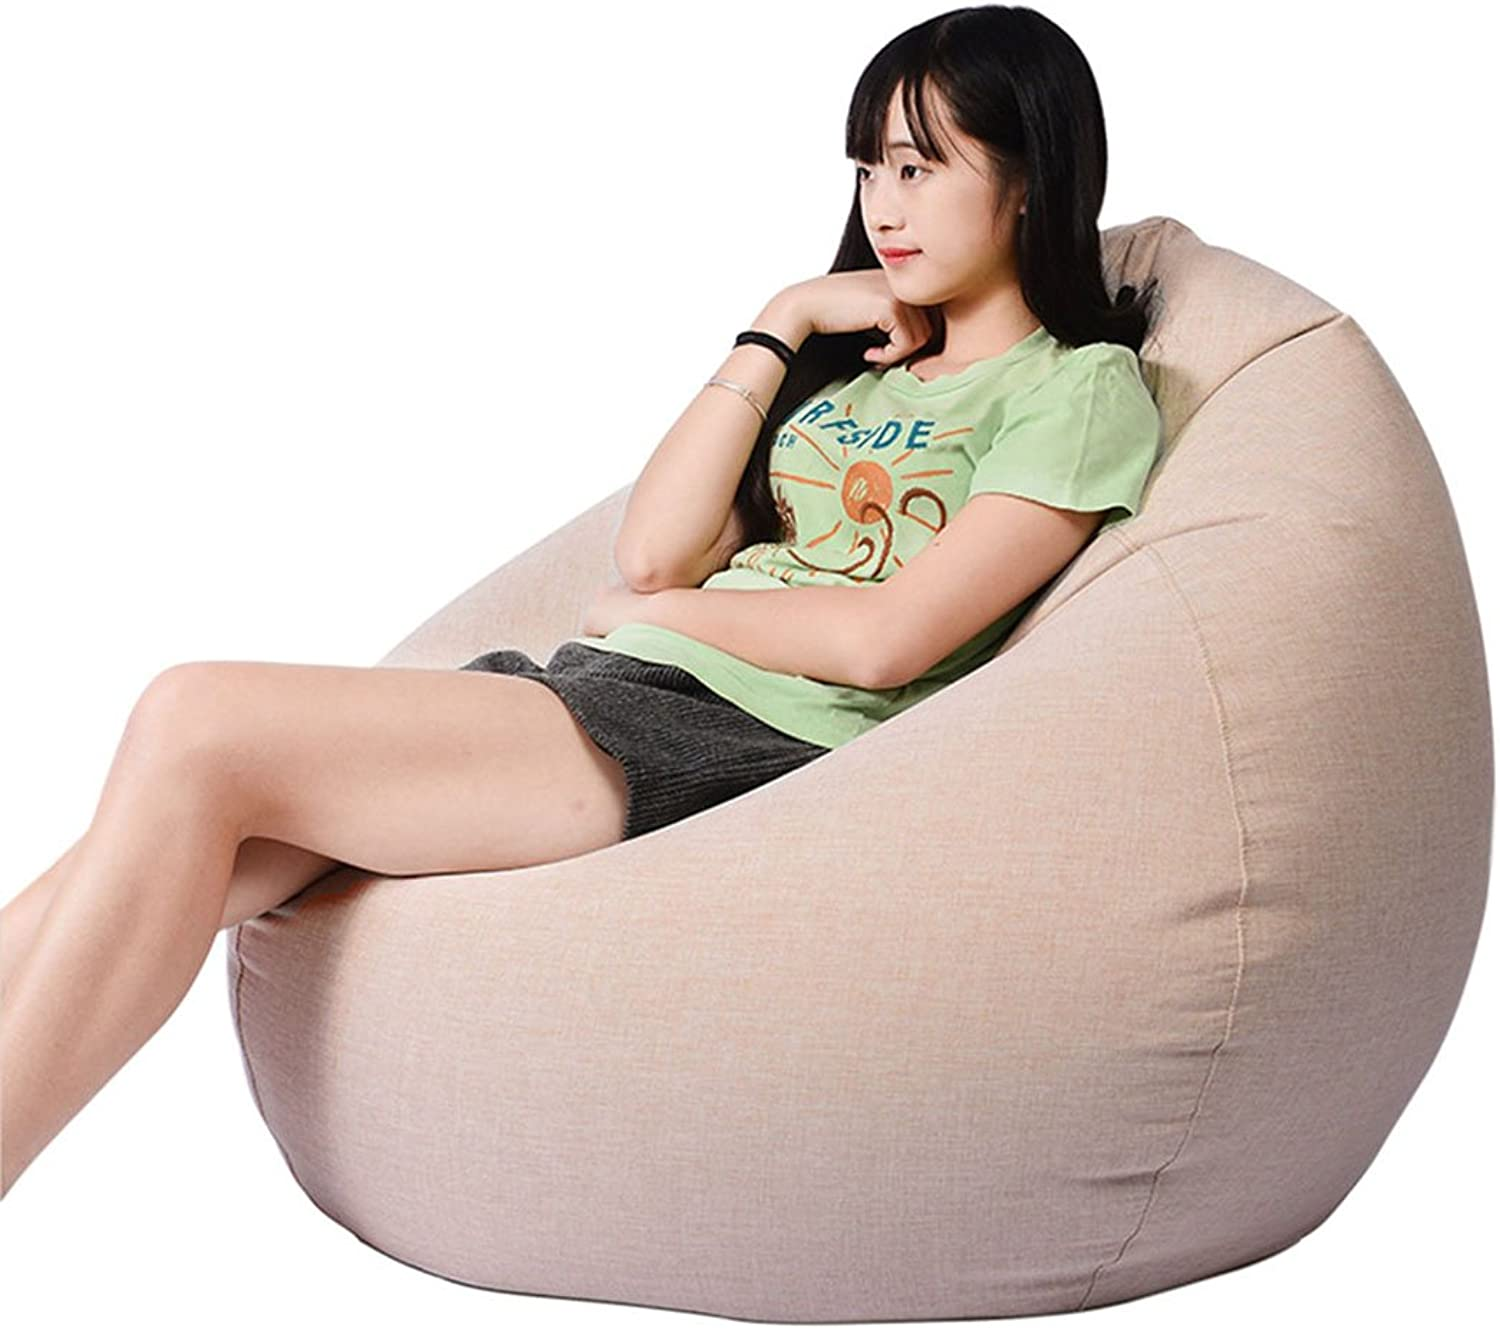 Freahap Huge Bean Bag Chair 35  for Adult Memory Foam Filled Sofa Lounge Couch Removable Cover Apricot